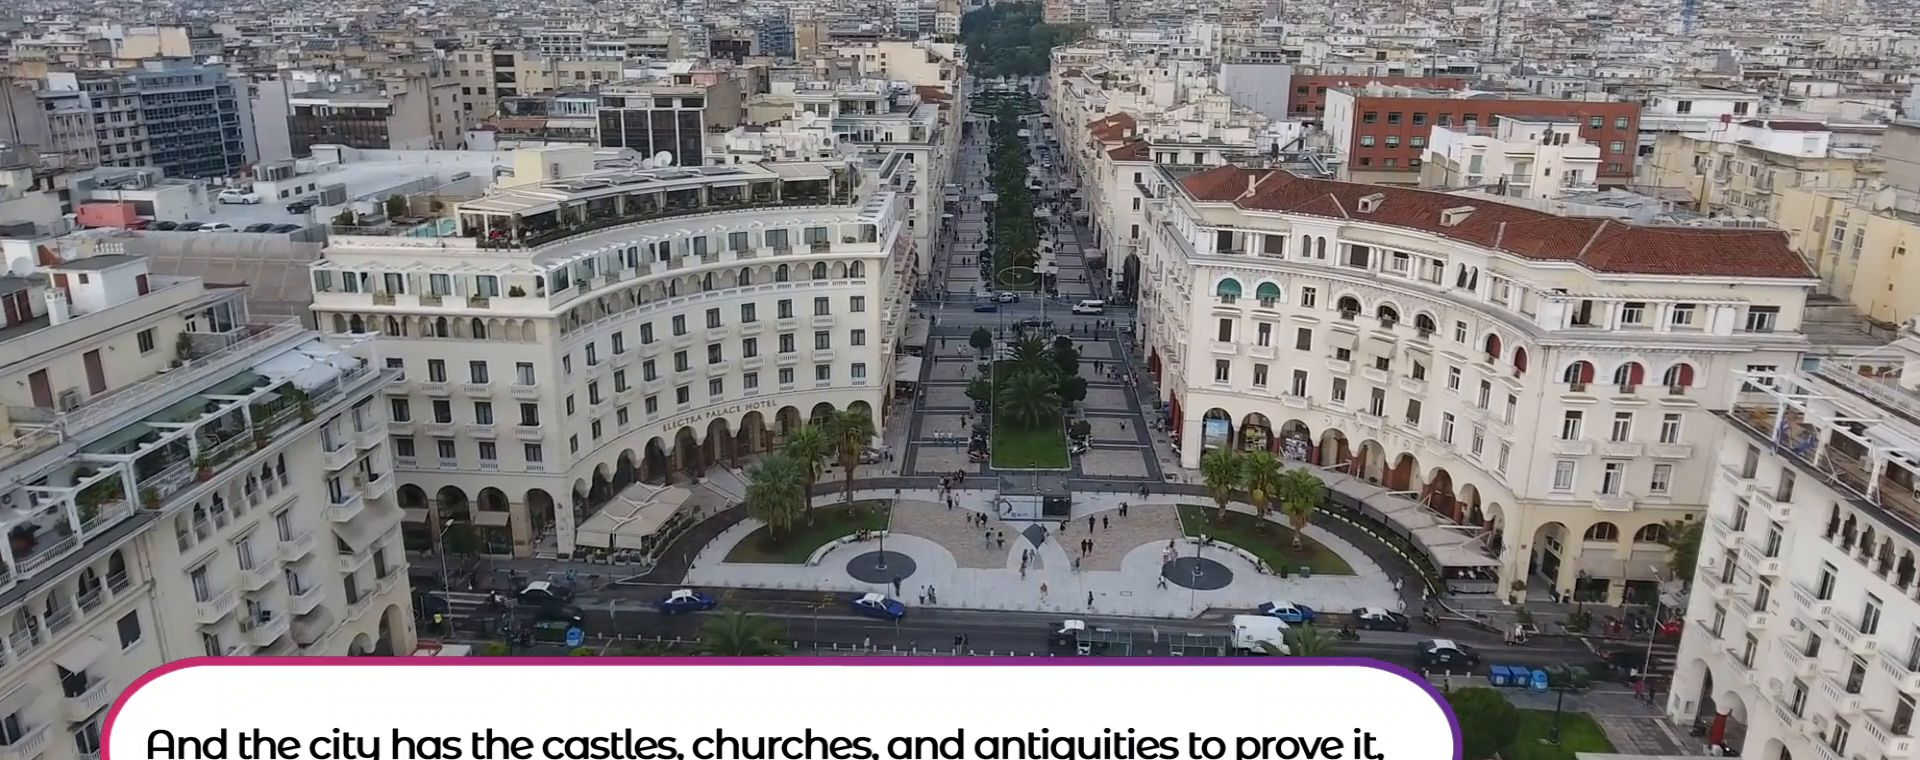 TOP RATED HISTORICAL SITES IN THESSALONIKI